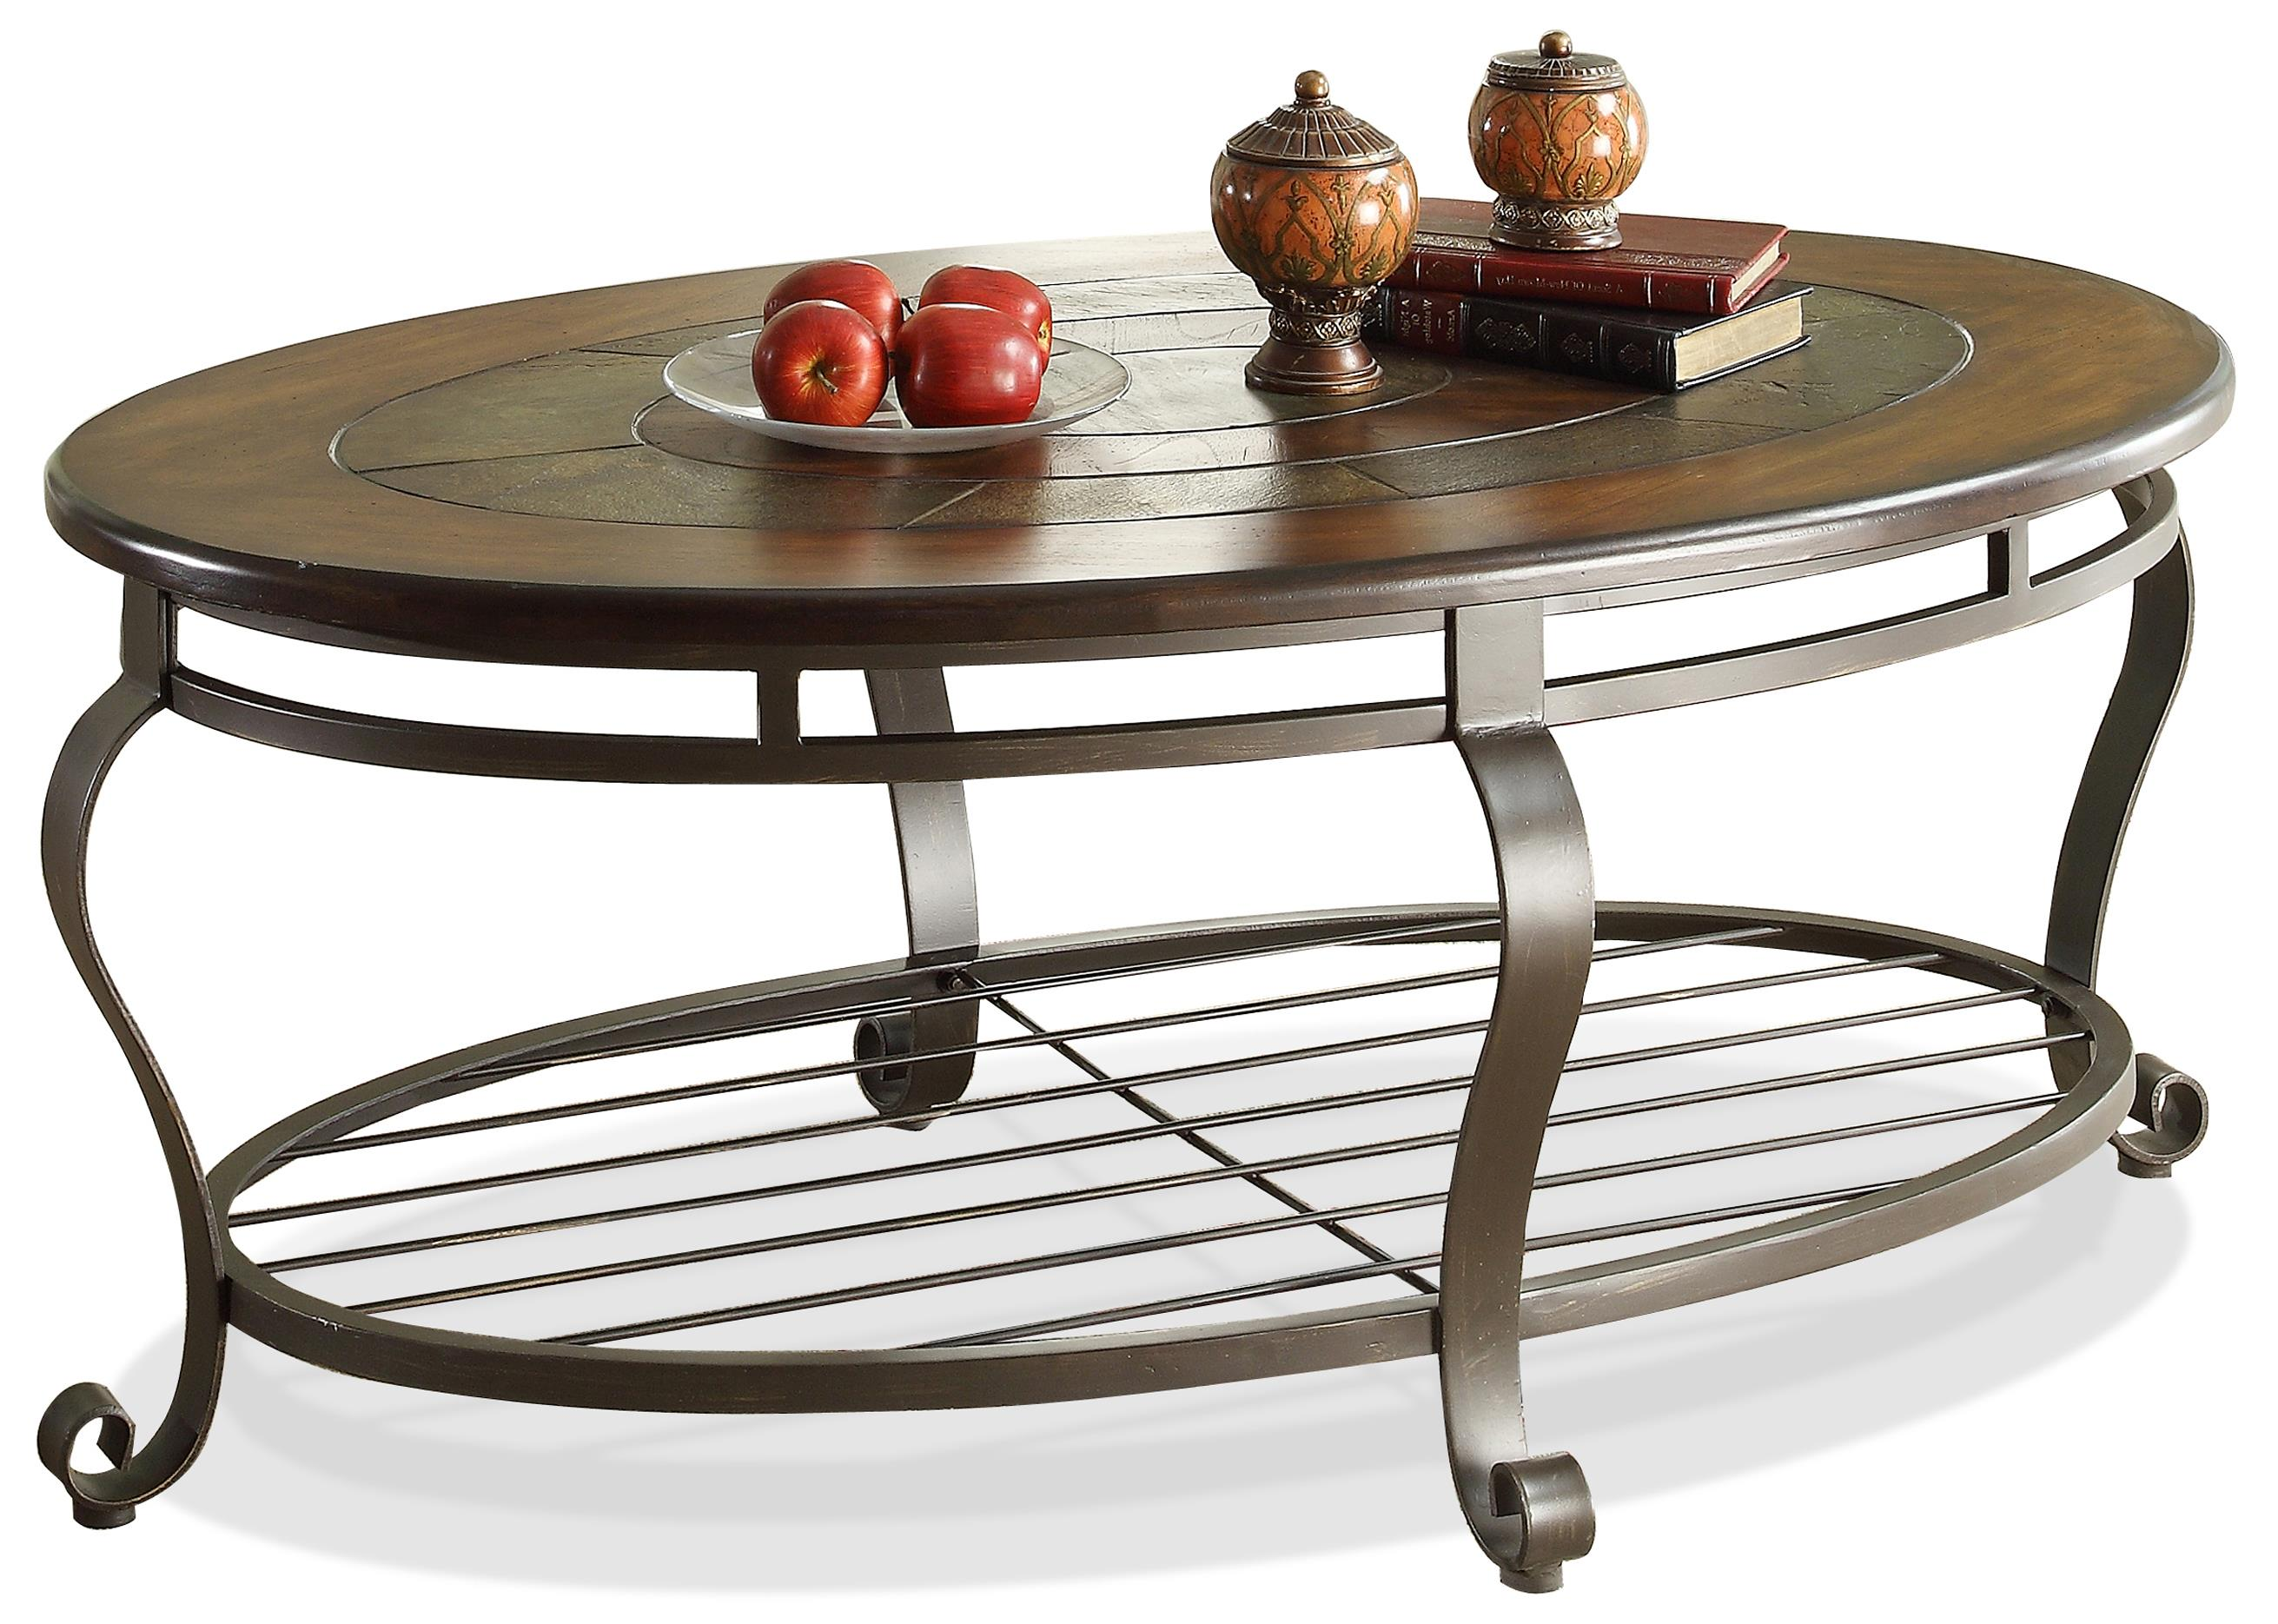 Riverside Furniture Eastview Oval Coffee Table - Item Number: 54702